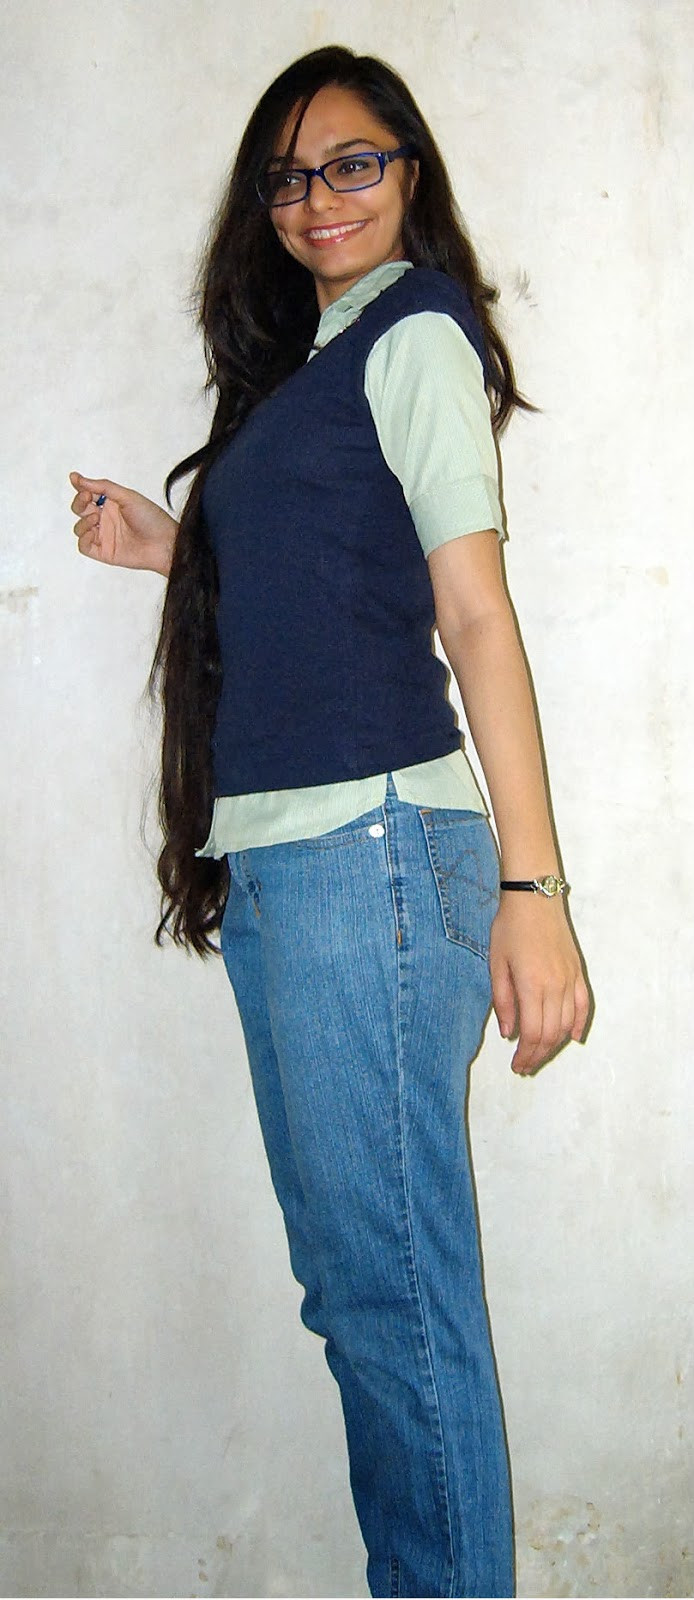 mumbai streetstyle, layering, short sleeved jumper, green shirt, blue boyfriend jeans